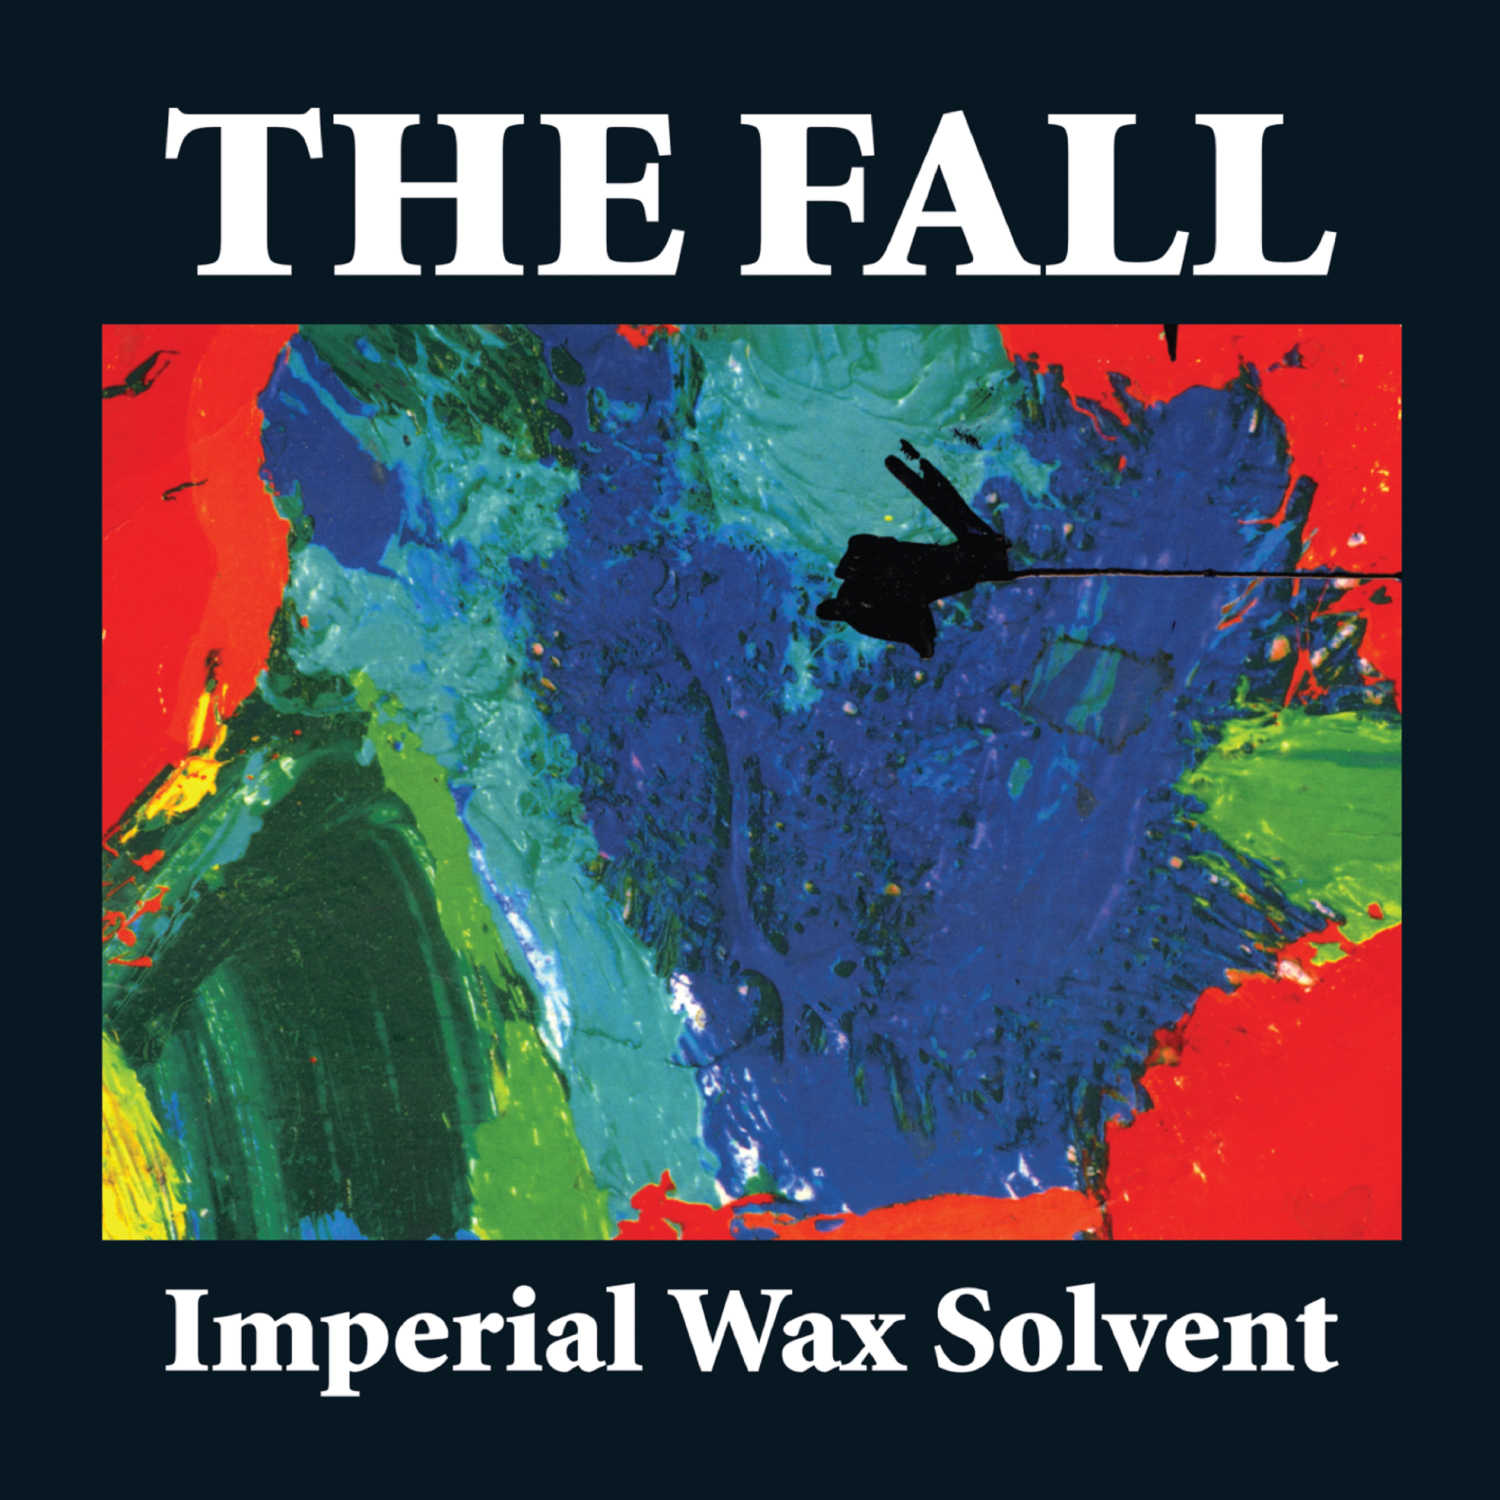 The Fall - Imperial Wax Solvent Limited Edition 2LP Splatter Colour Vinyl Record Album